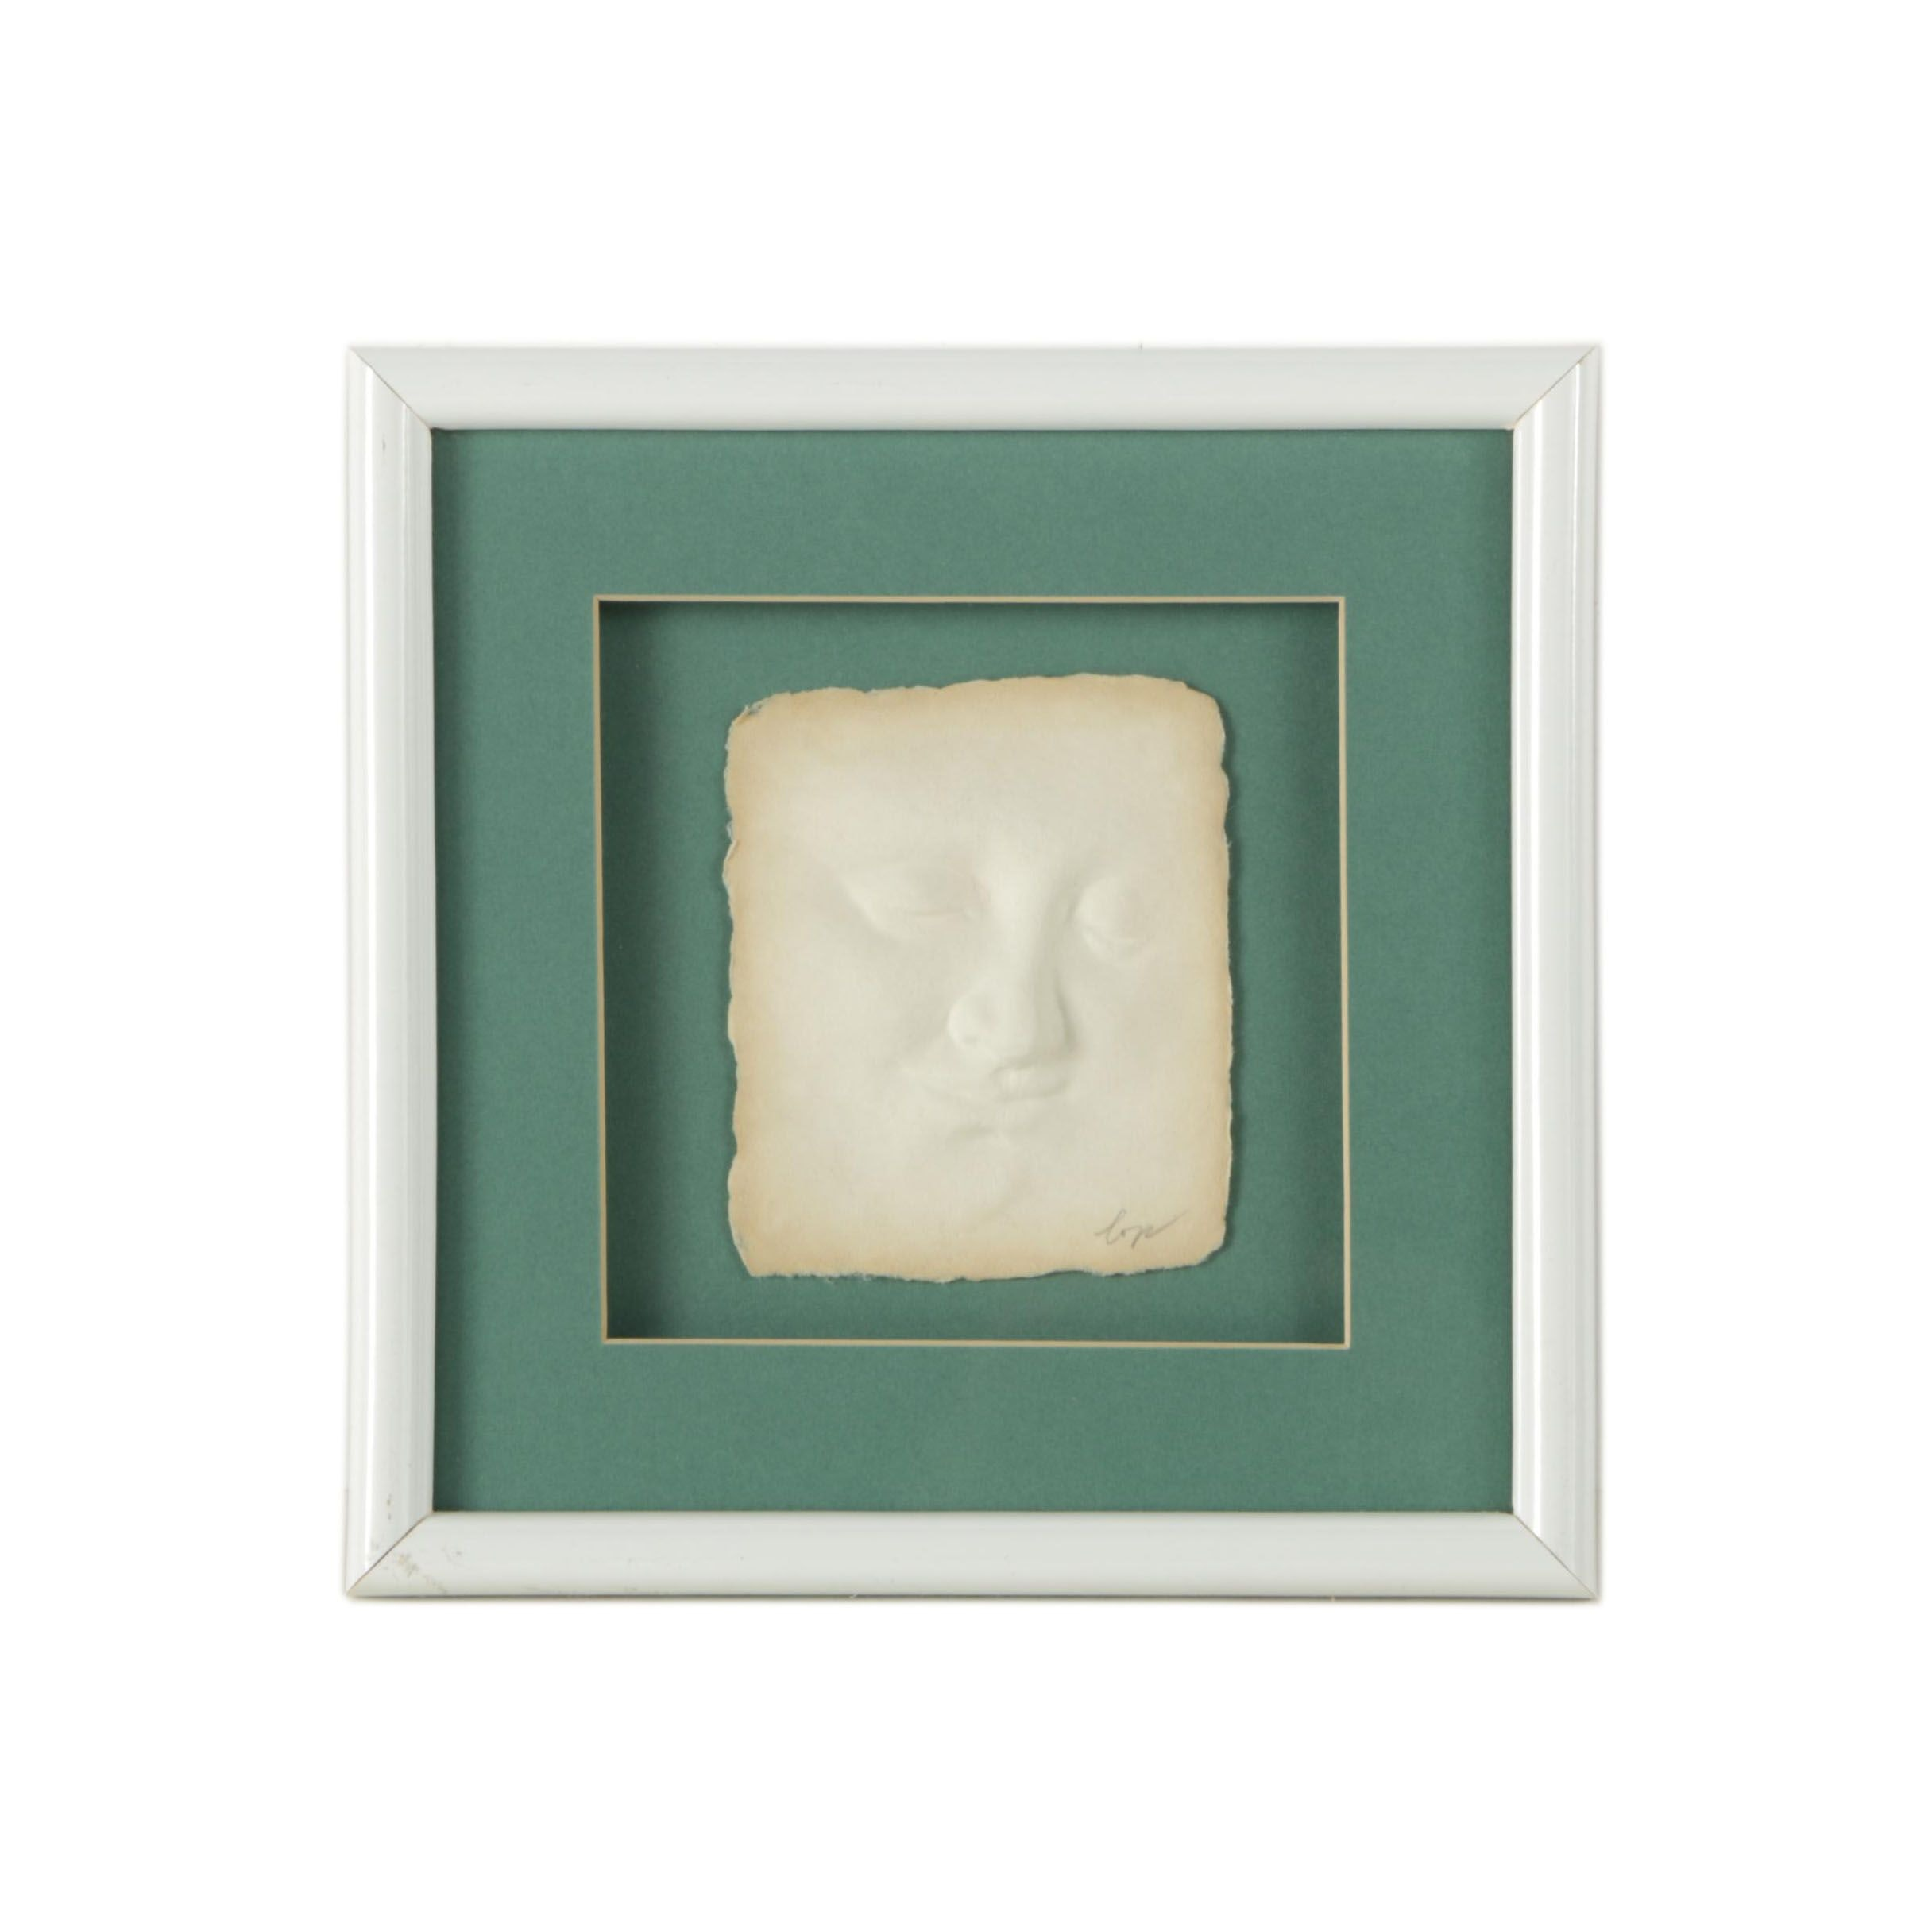 Paper Relief Sculpture of Smiling Face